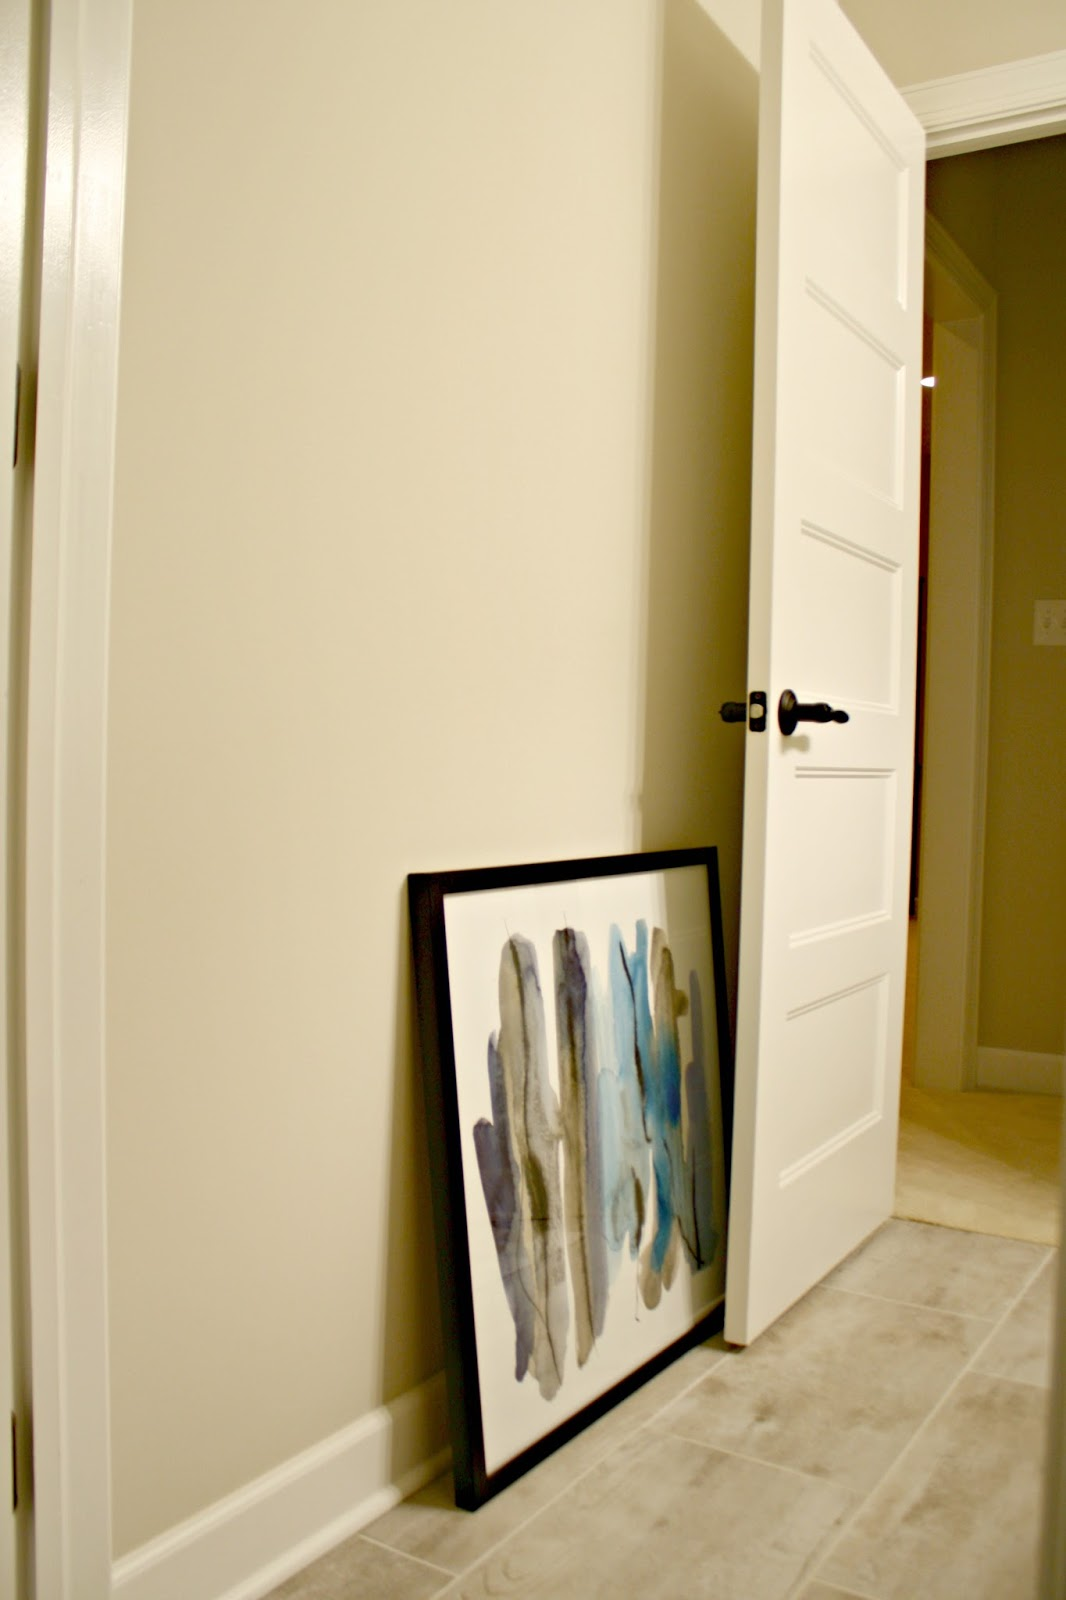 Marvelous I should have shut the door to really show this but you get the idea If a door stays open all the time I go with the former and hang it to